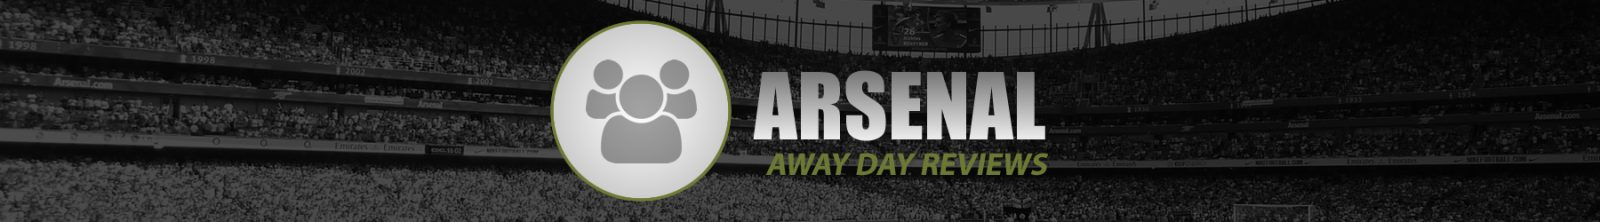 Review Arsenal